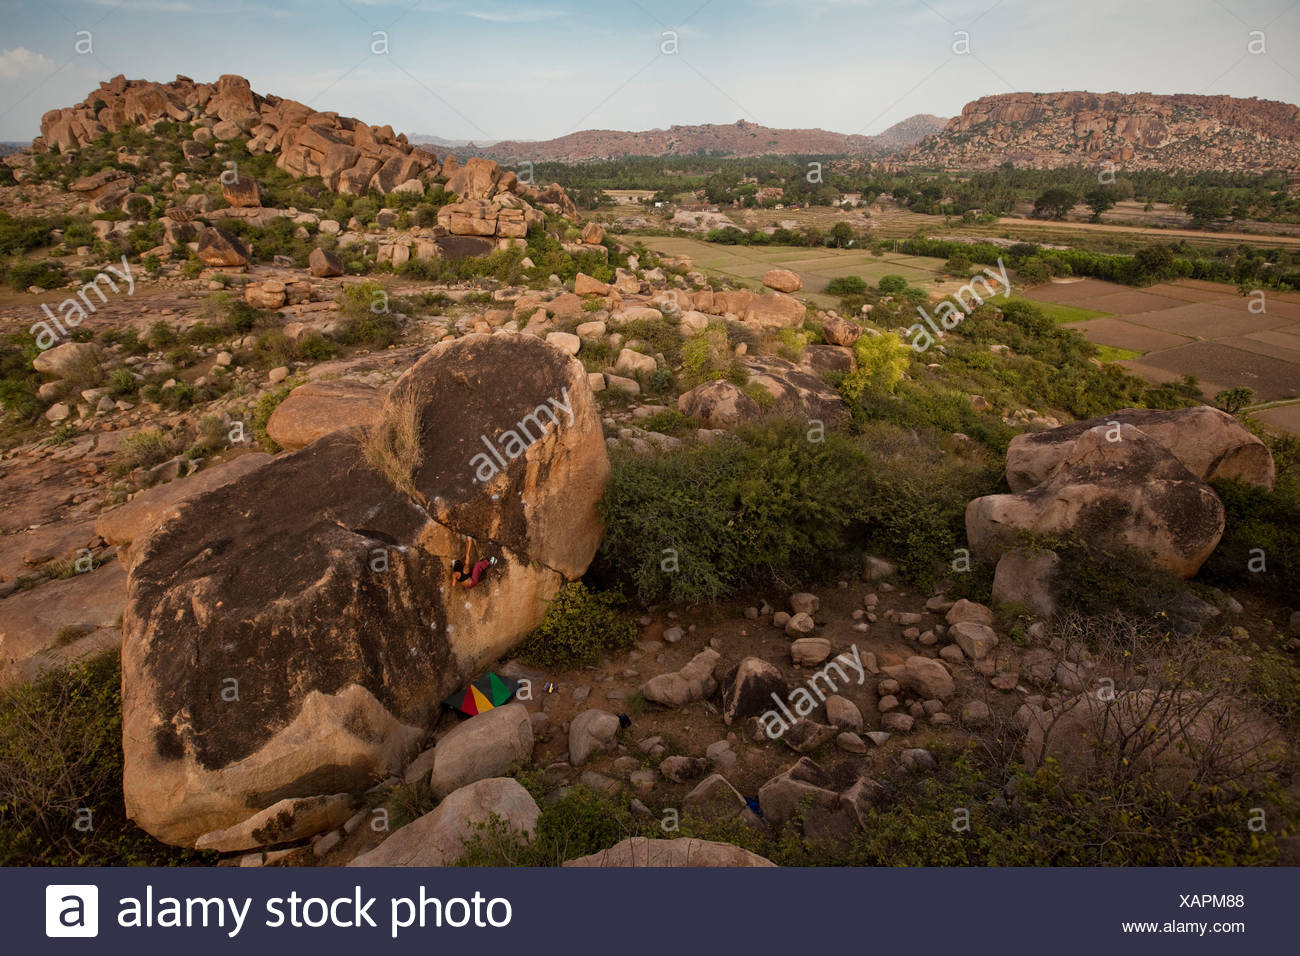 Female climber alone on a massive boulder amid a landscape of stone and brush. - Stock Image